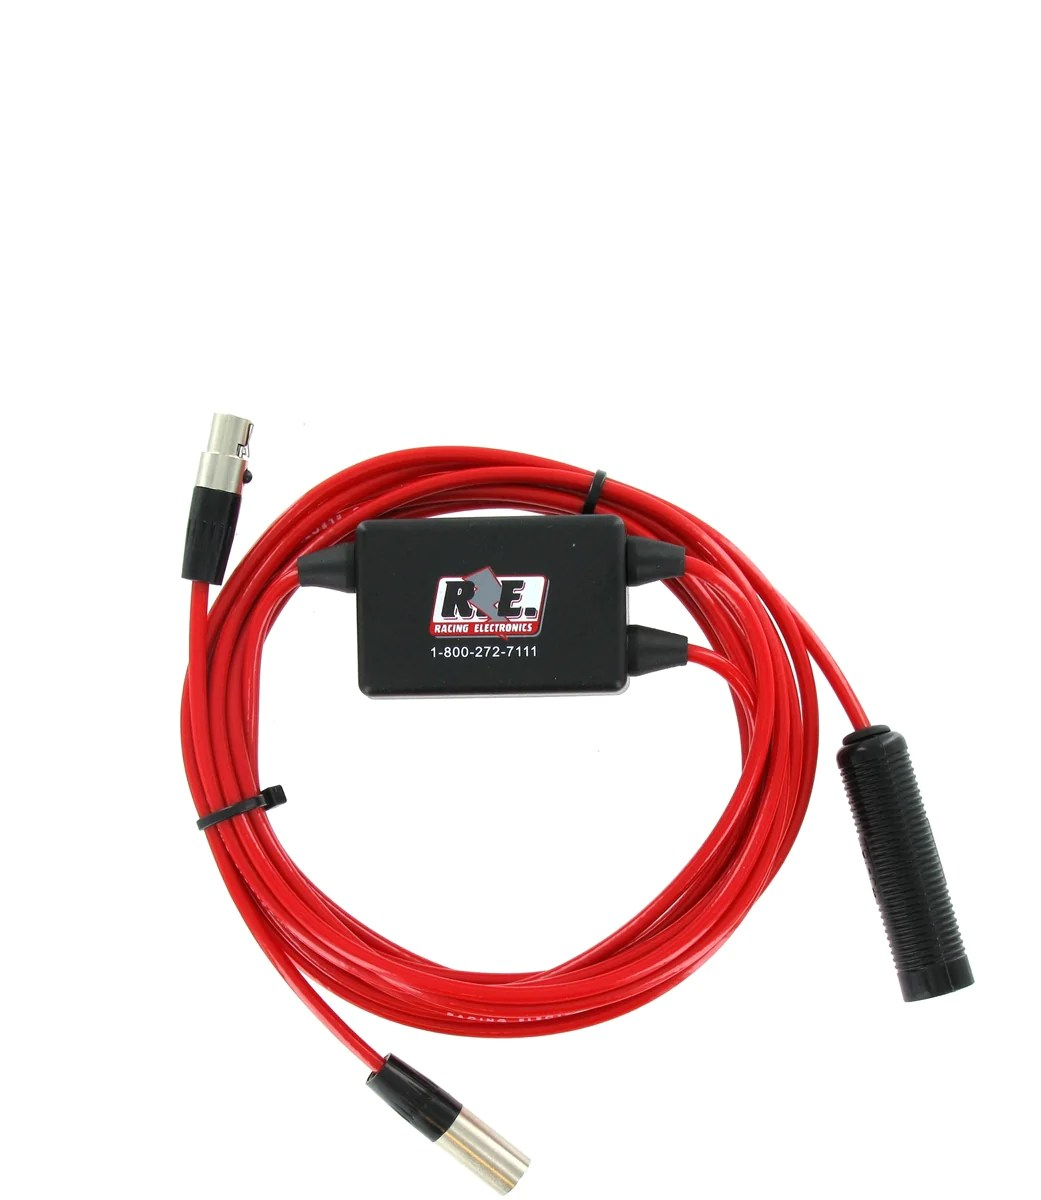 hight resolution of car harness 4 conductor legacy universal